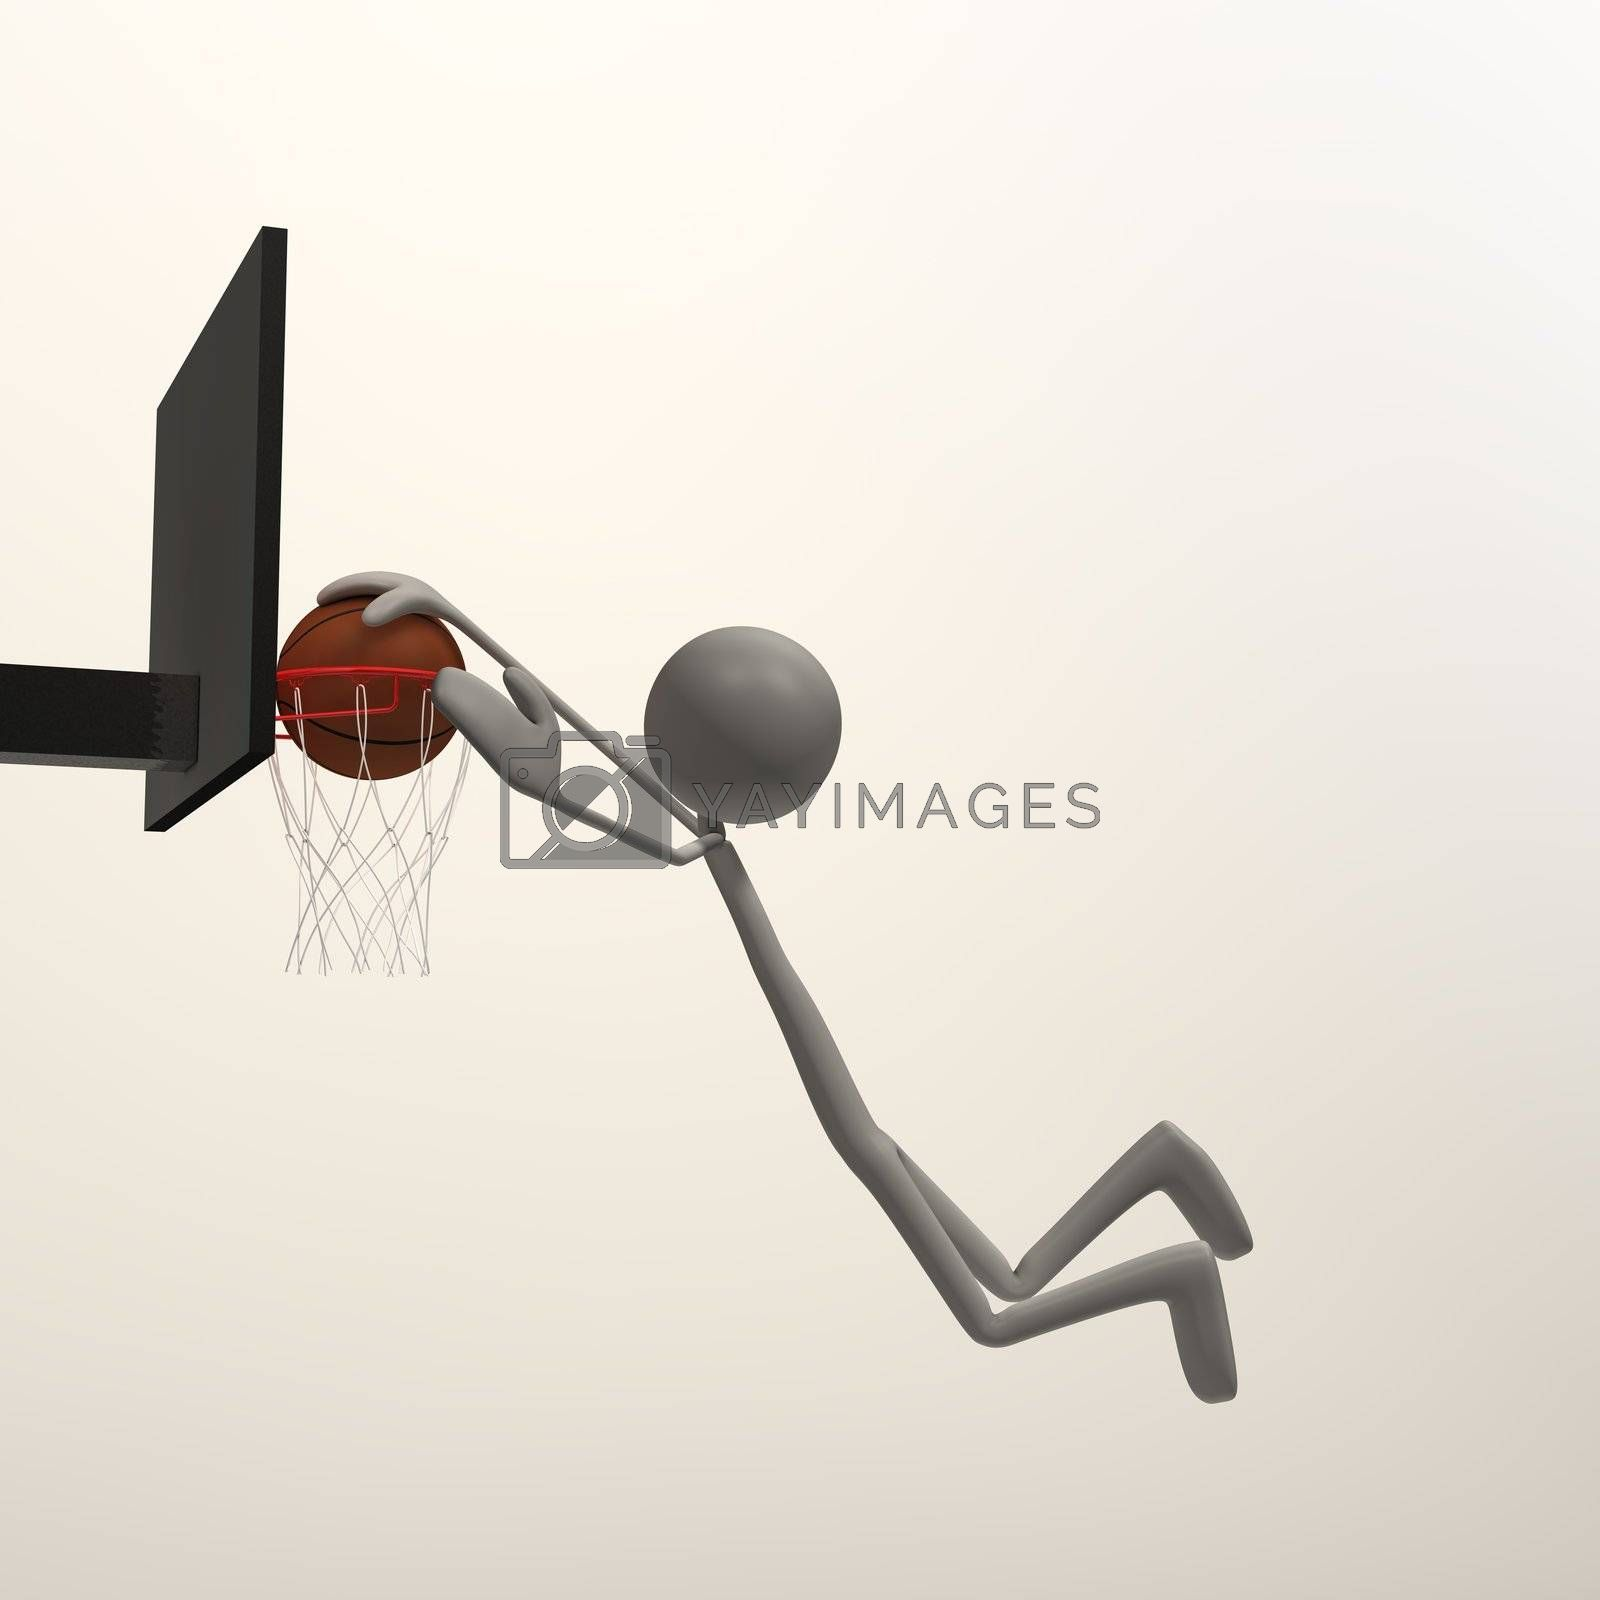 a figure is doing a slam dunk